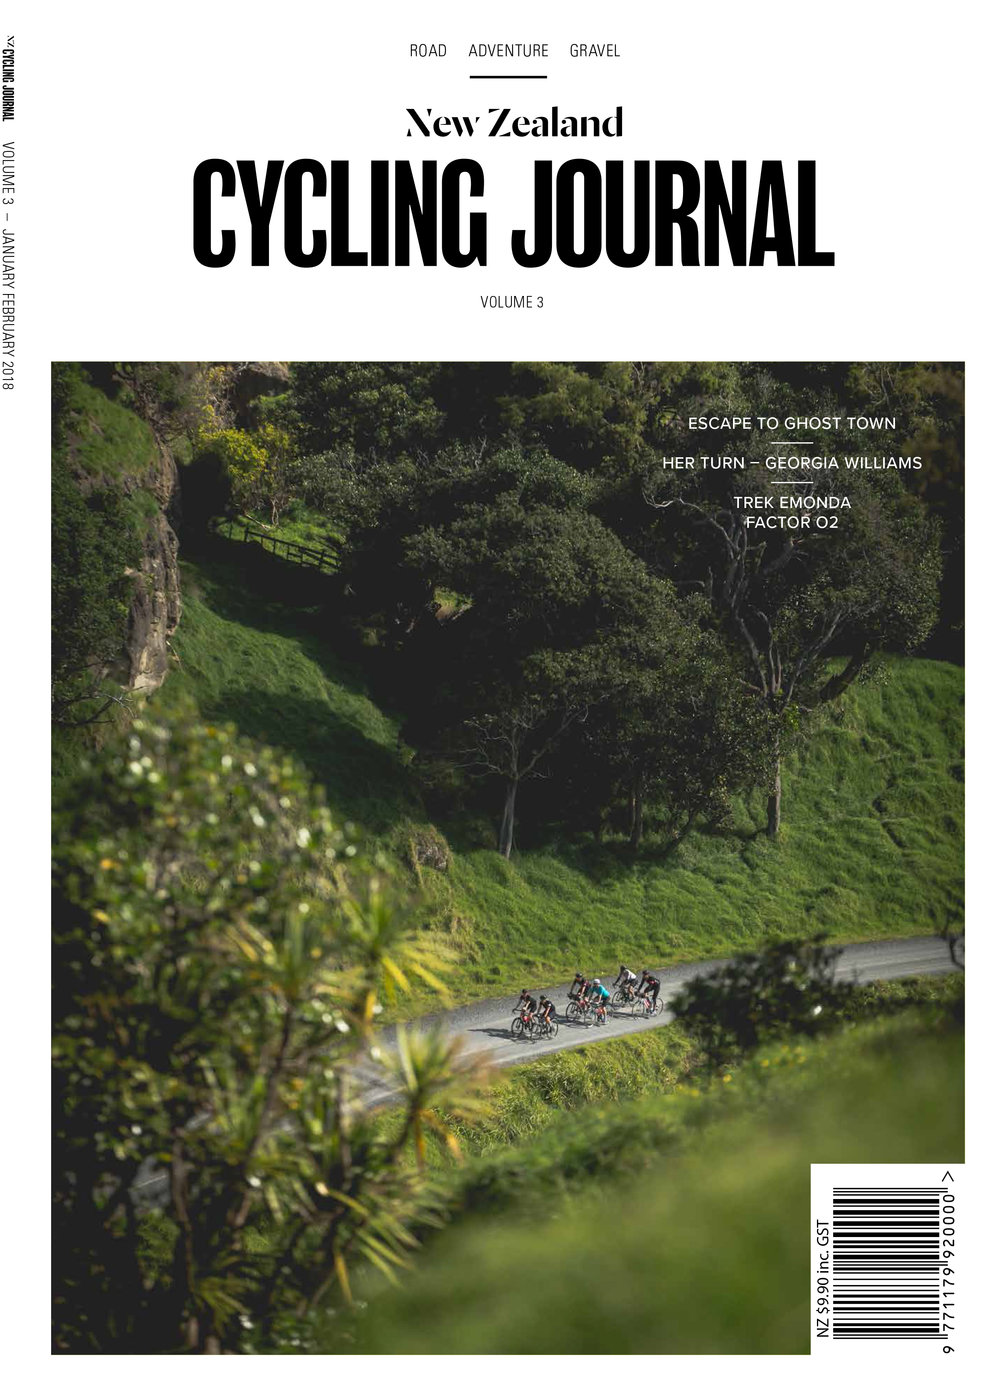 NZ Cycling Journal - Vol.3 Cover.jpg